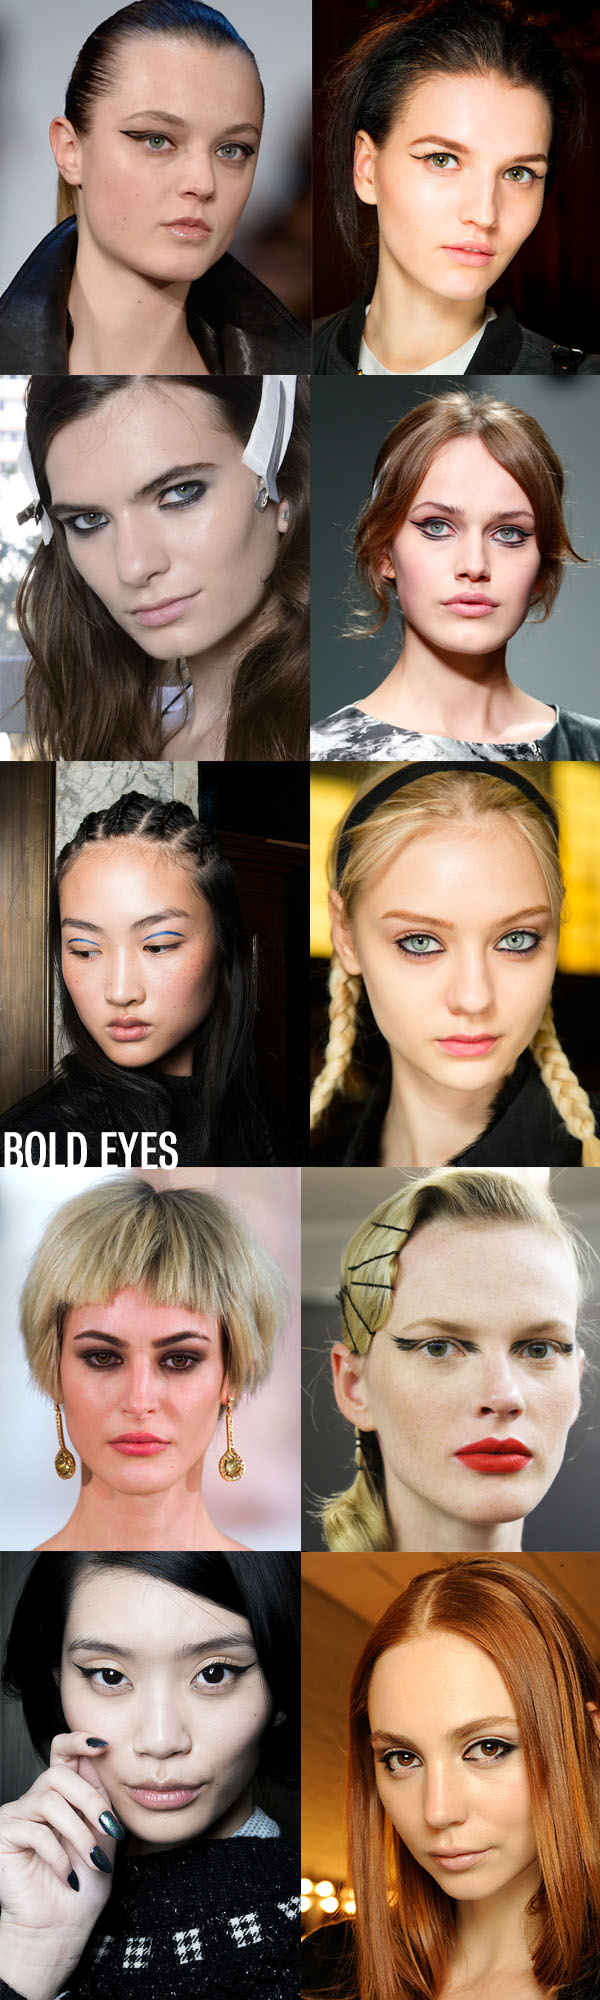 NYFW Beauty trends - bold eyes